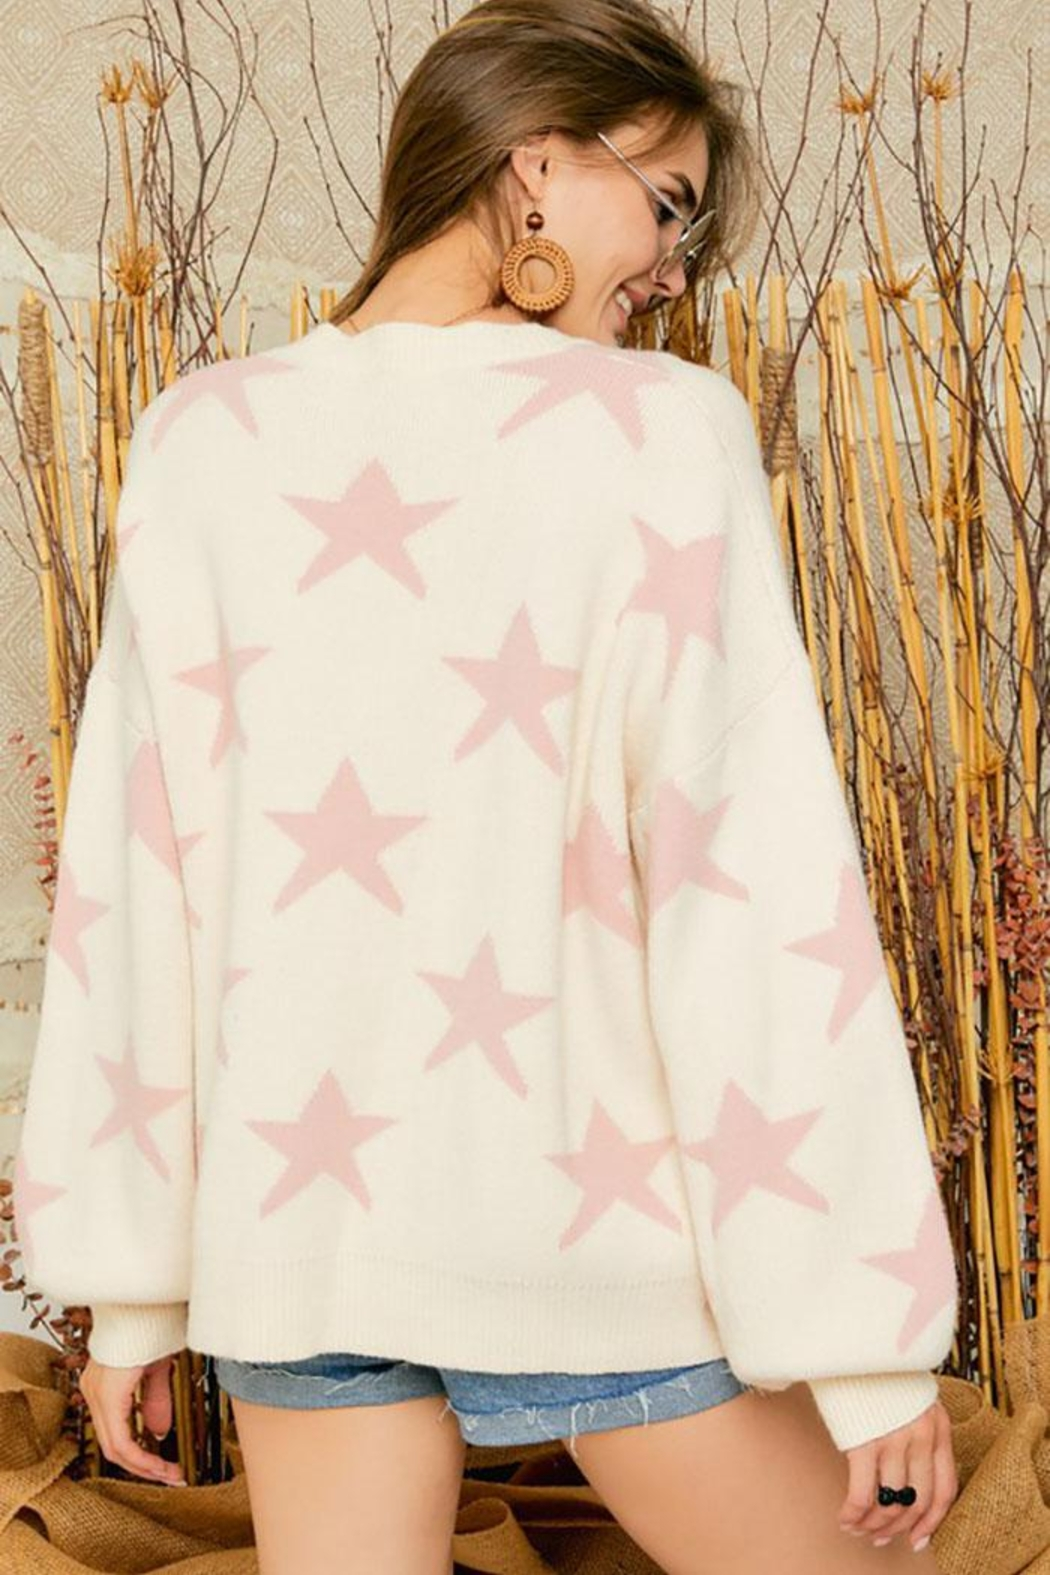 Adora Star Print Knit Oversized Pullover Sweater Top - Front Full Image